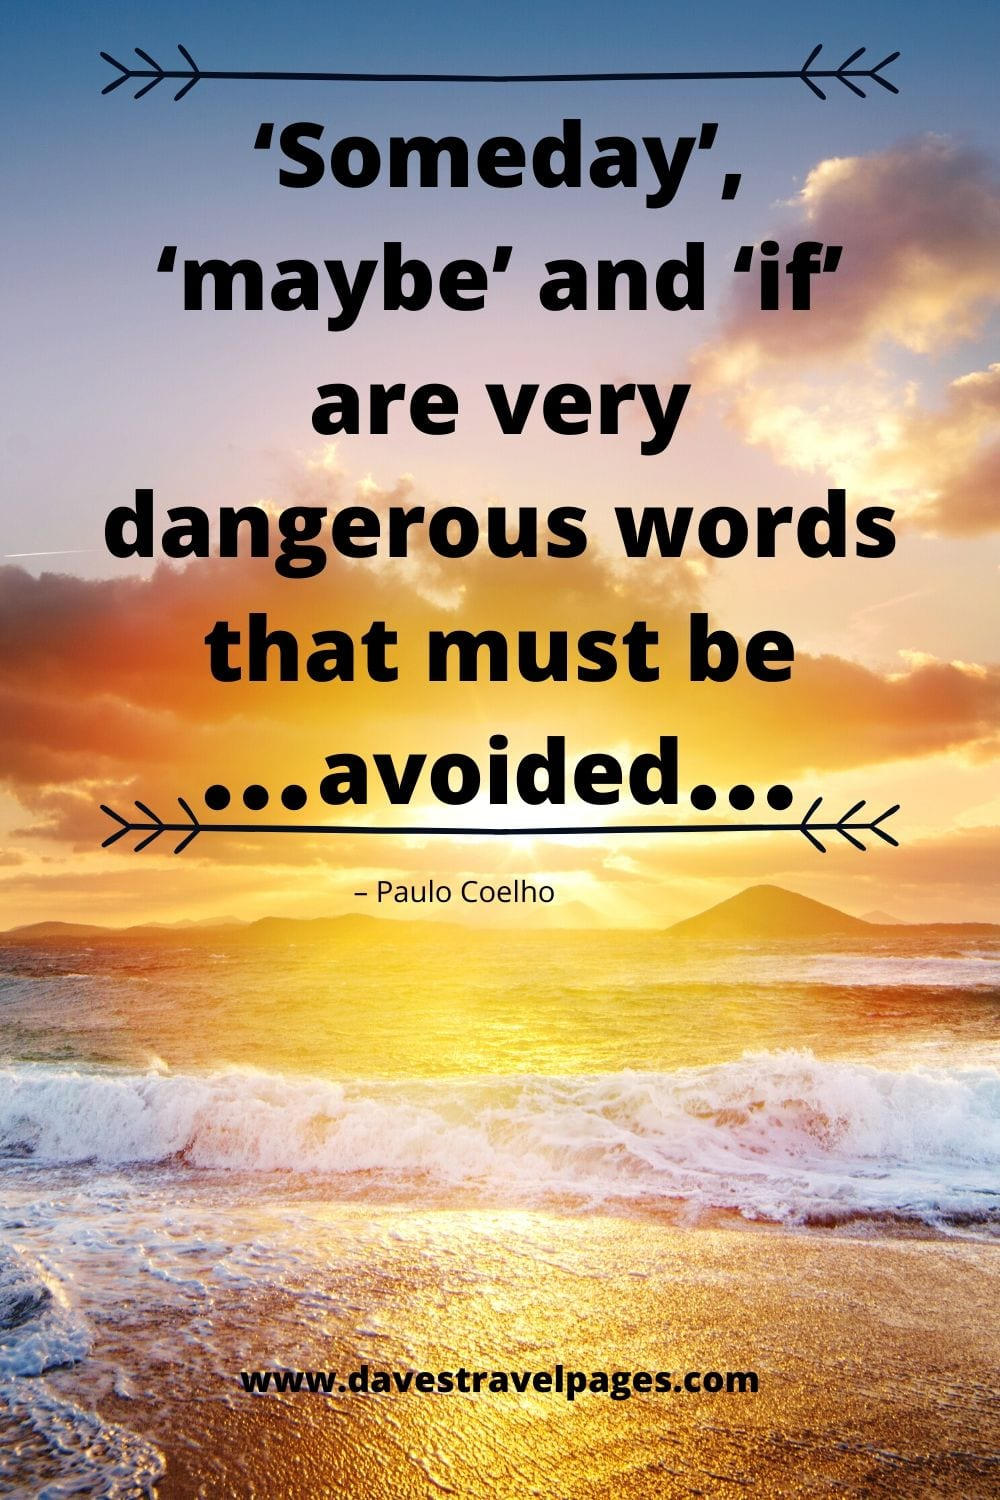 """Someday', 'maybe' and 'if' are very dangerous words that must be avoided."" – Paulo Coelho"